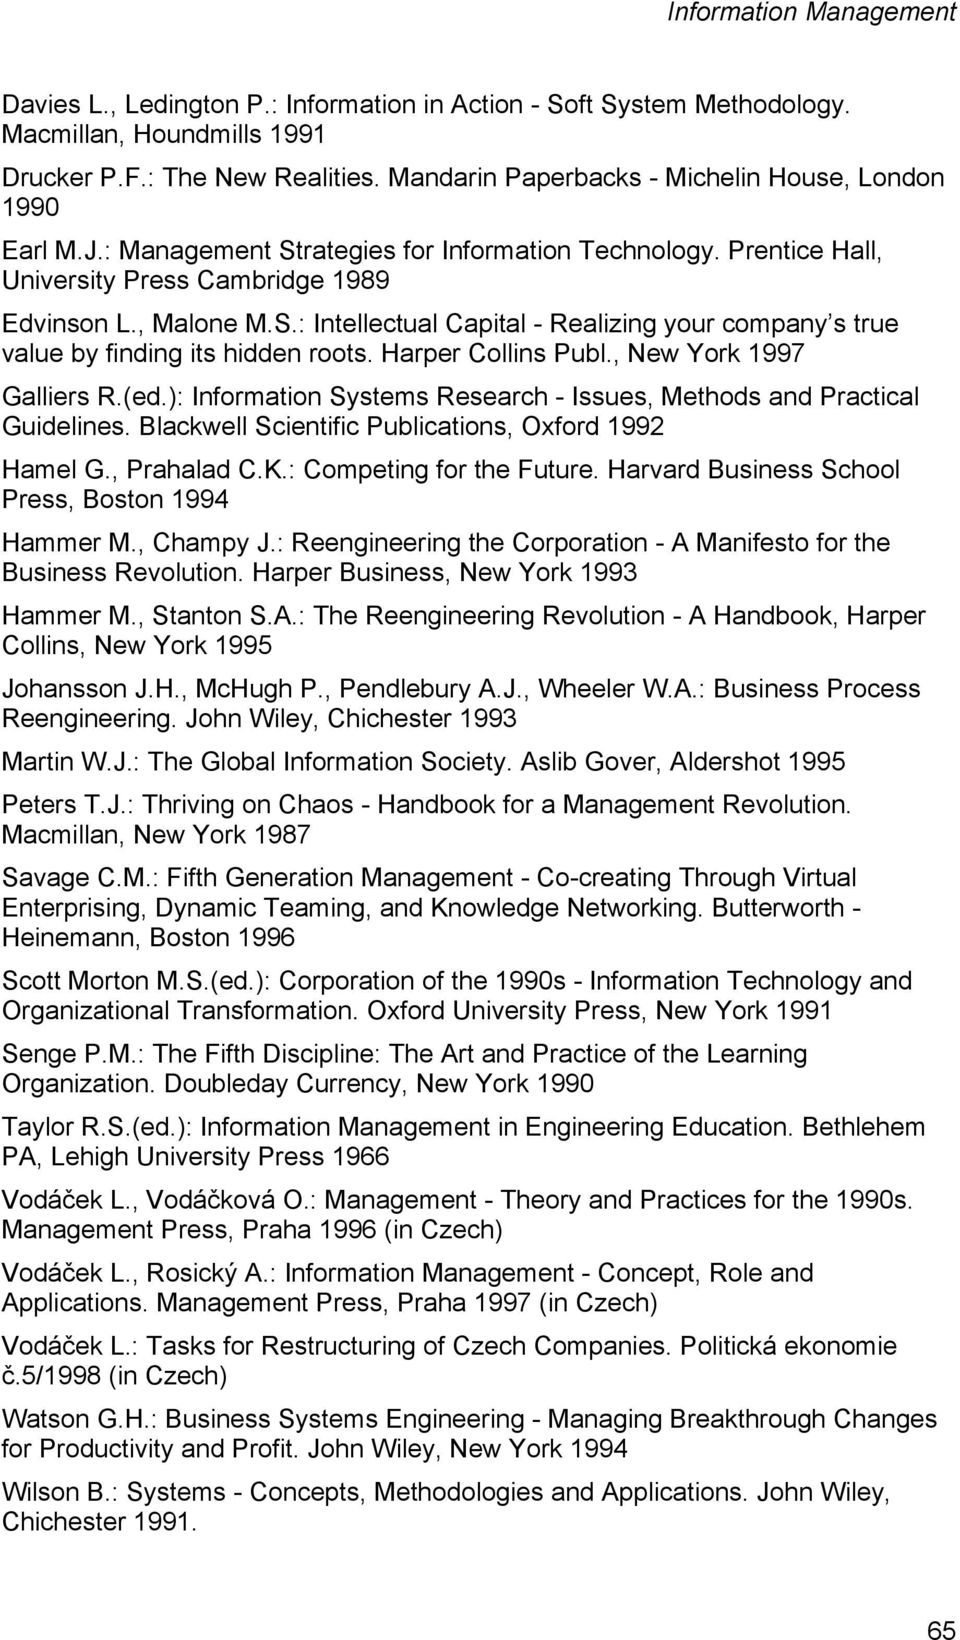 Harper Collins Publ., New York 1997 Galliers R.(ed.): Information Systems Research - Issues, Methods and Practical Guidelines. Blackwell Scientific Publications, Oxford 1992 Hamel G., Prahalad C.K.